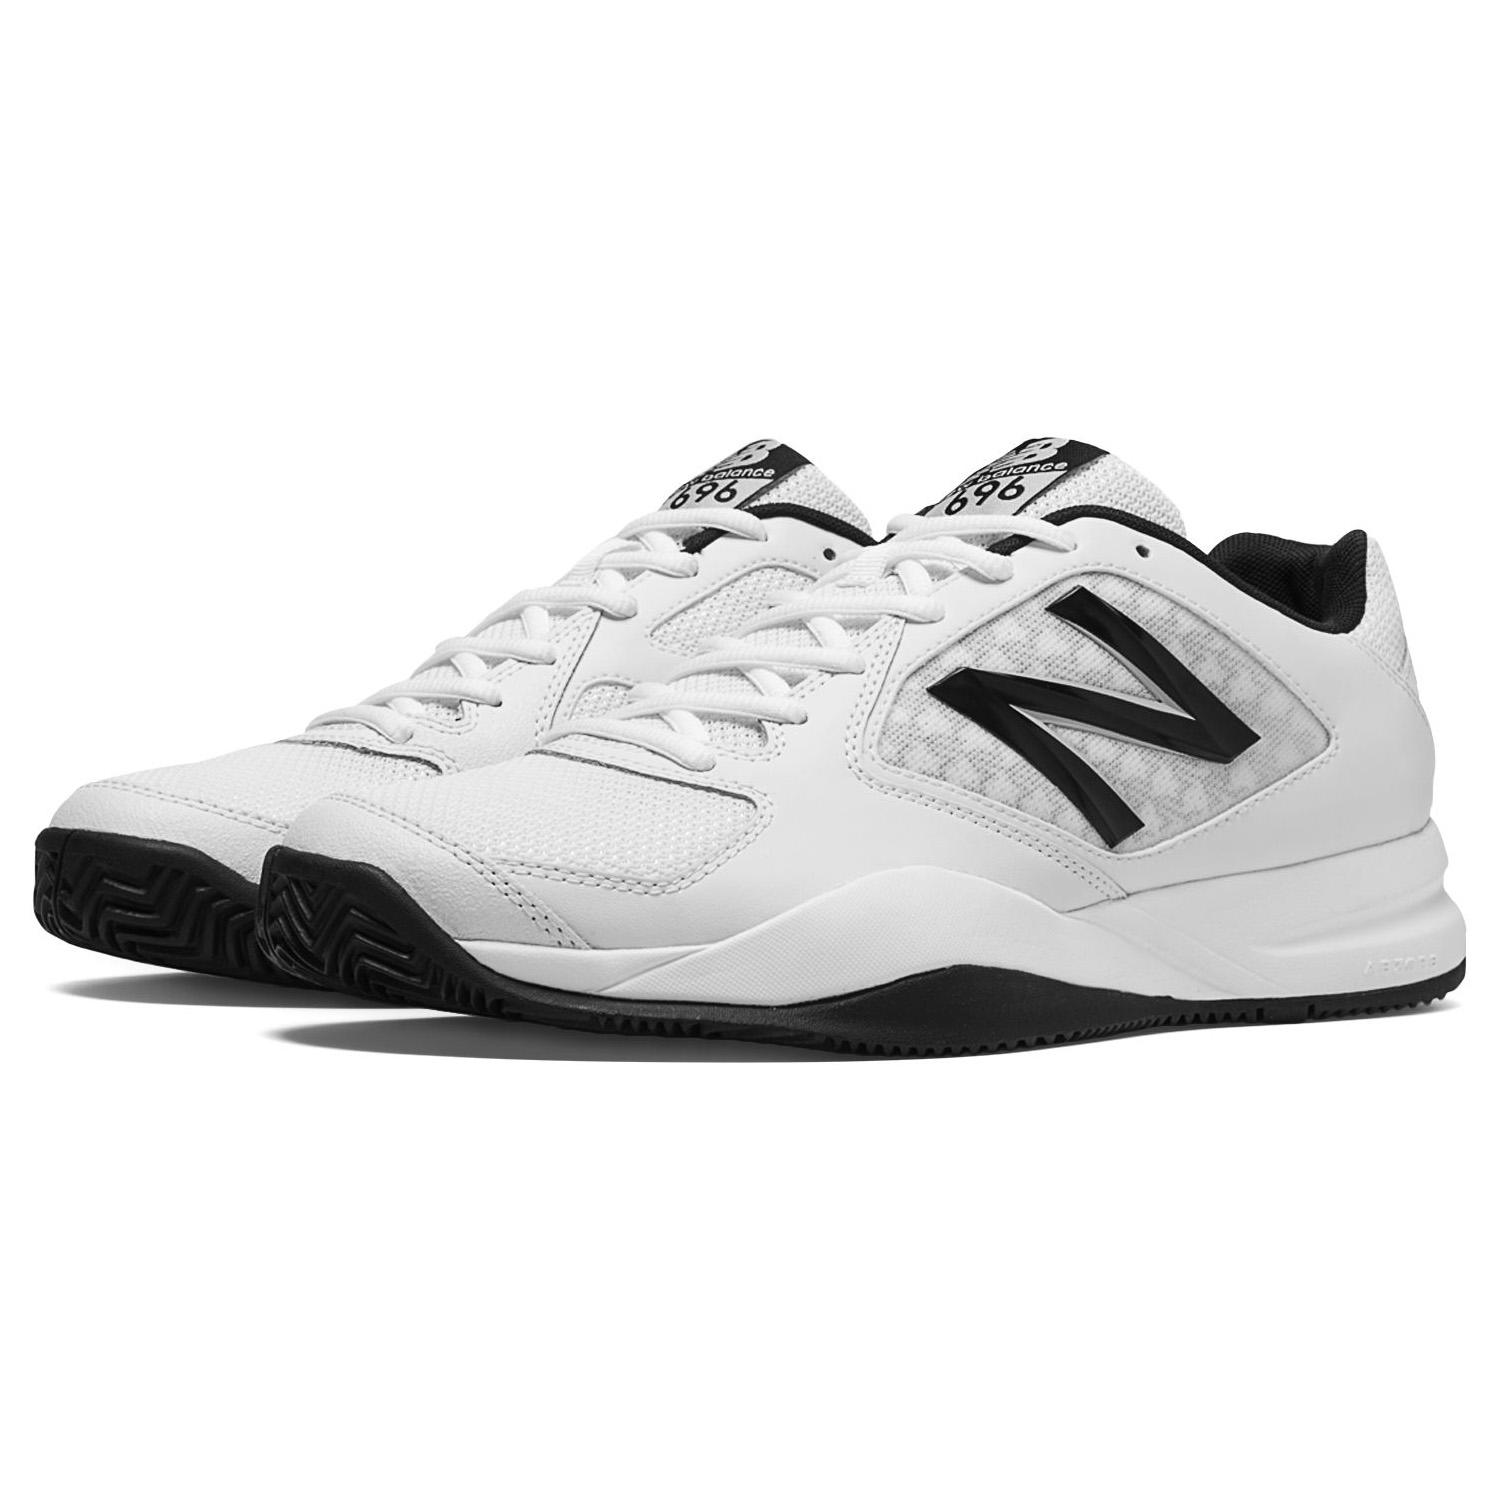 New Balance Mens 696v2 Tennis Shoes - White/Black (D)